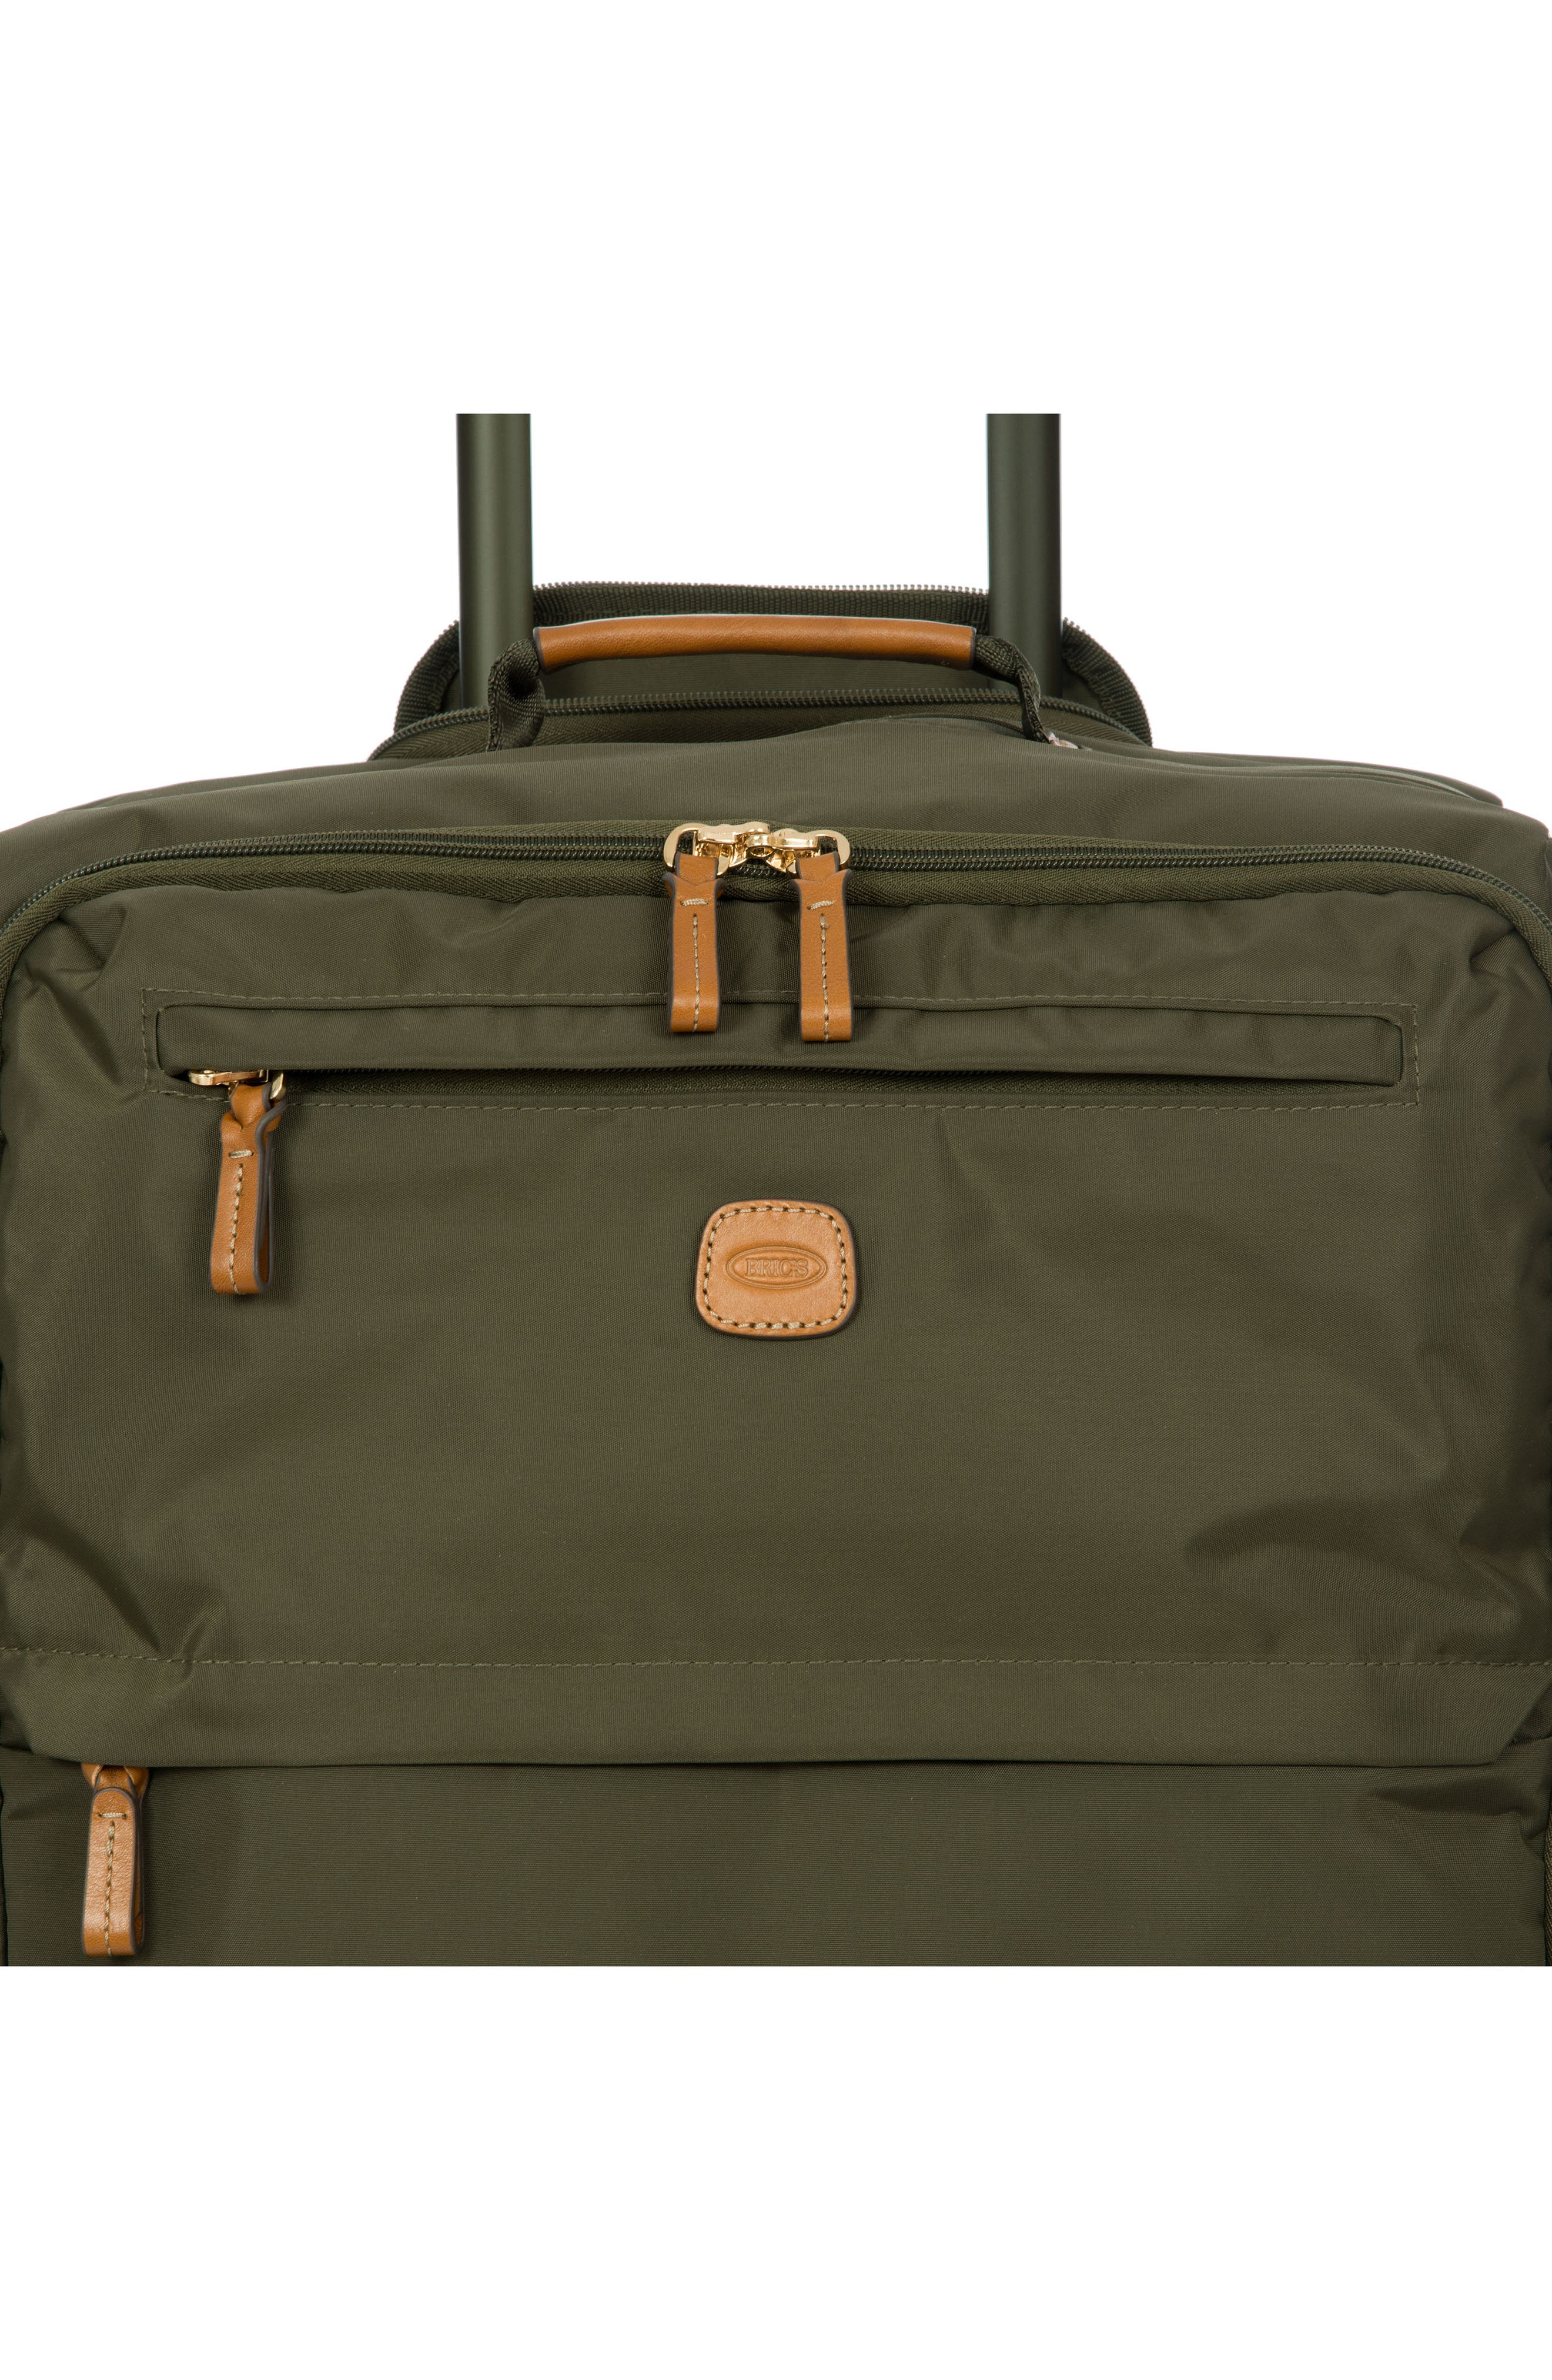 X-Bag 25-Inch Spinner Suitcase,                             Alternate thumbnail 7, color,                             Olive